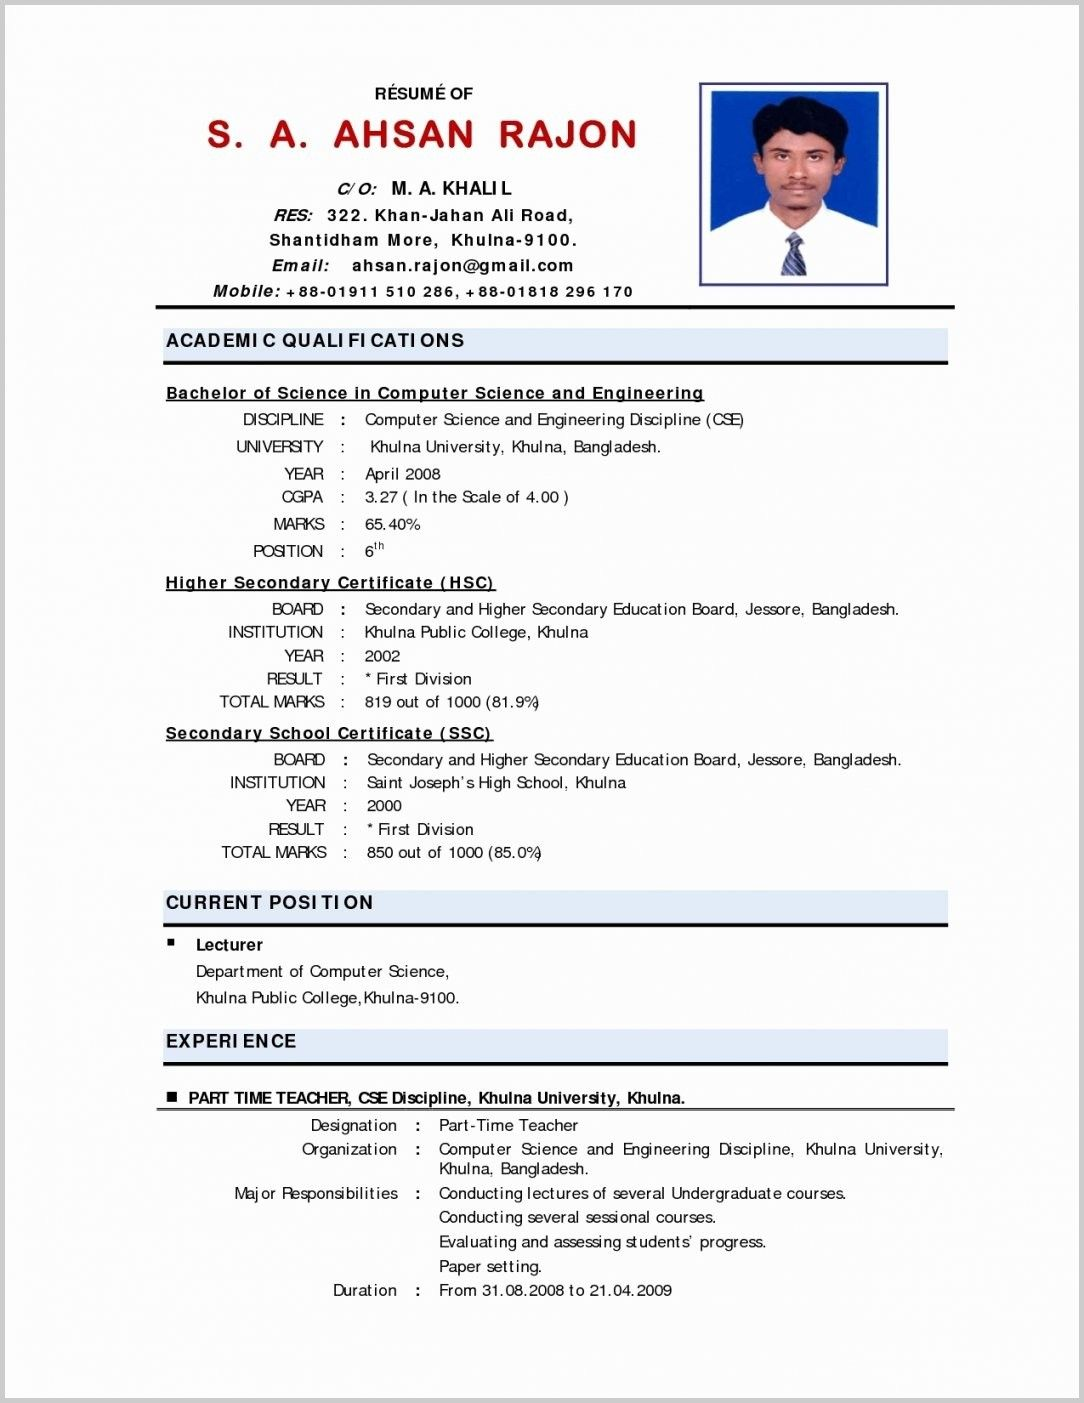 India Resume format download, Best resume format, Resume